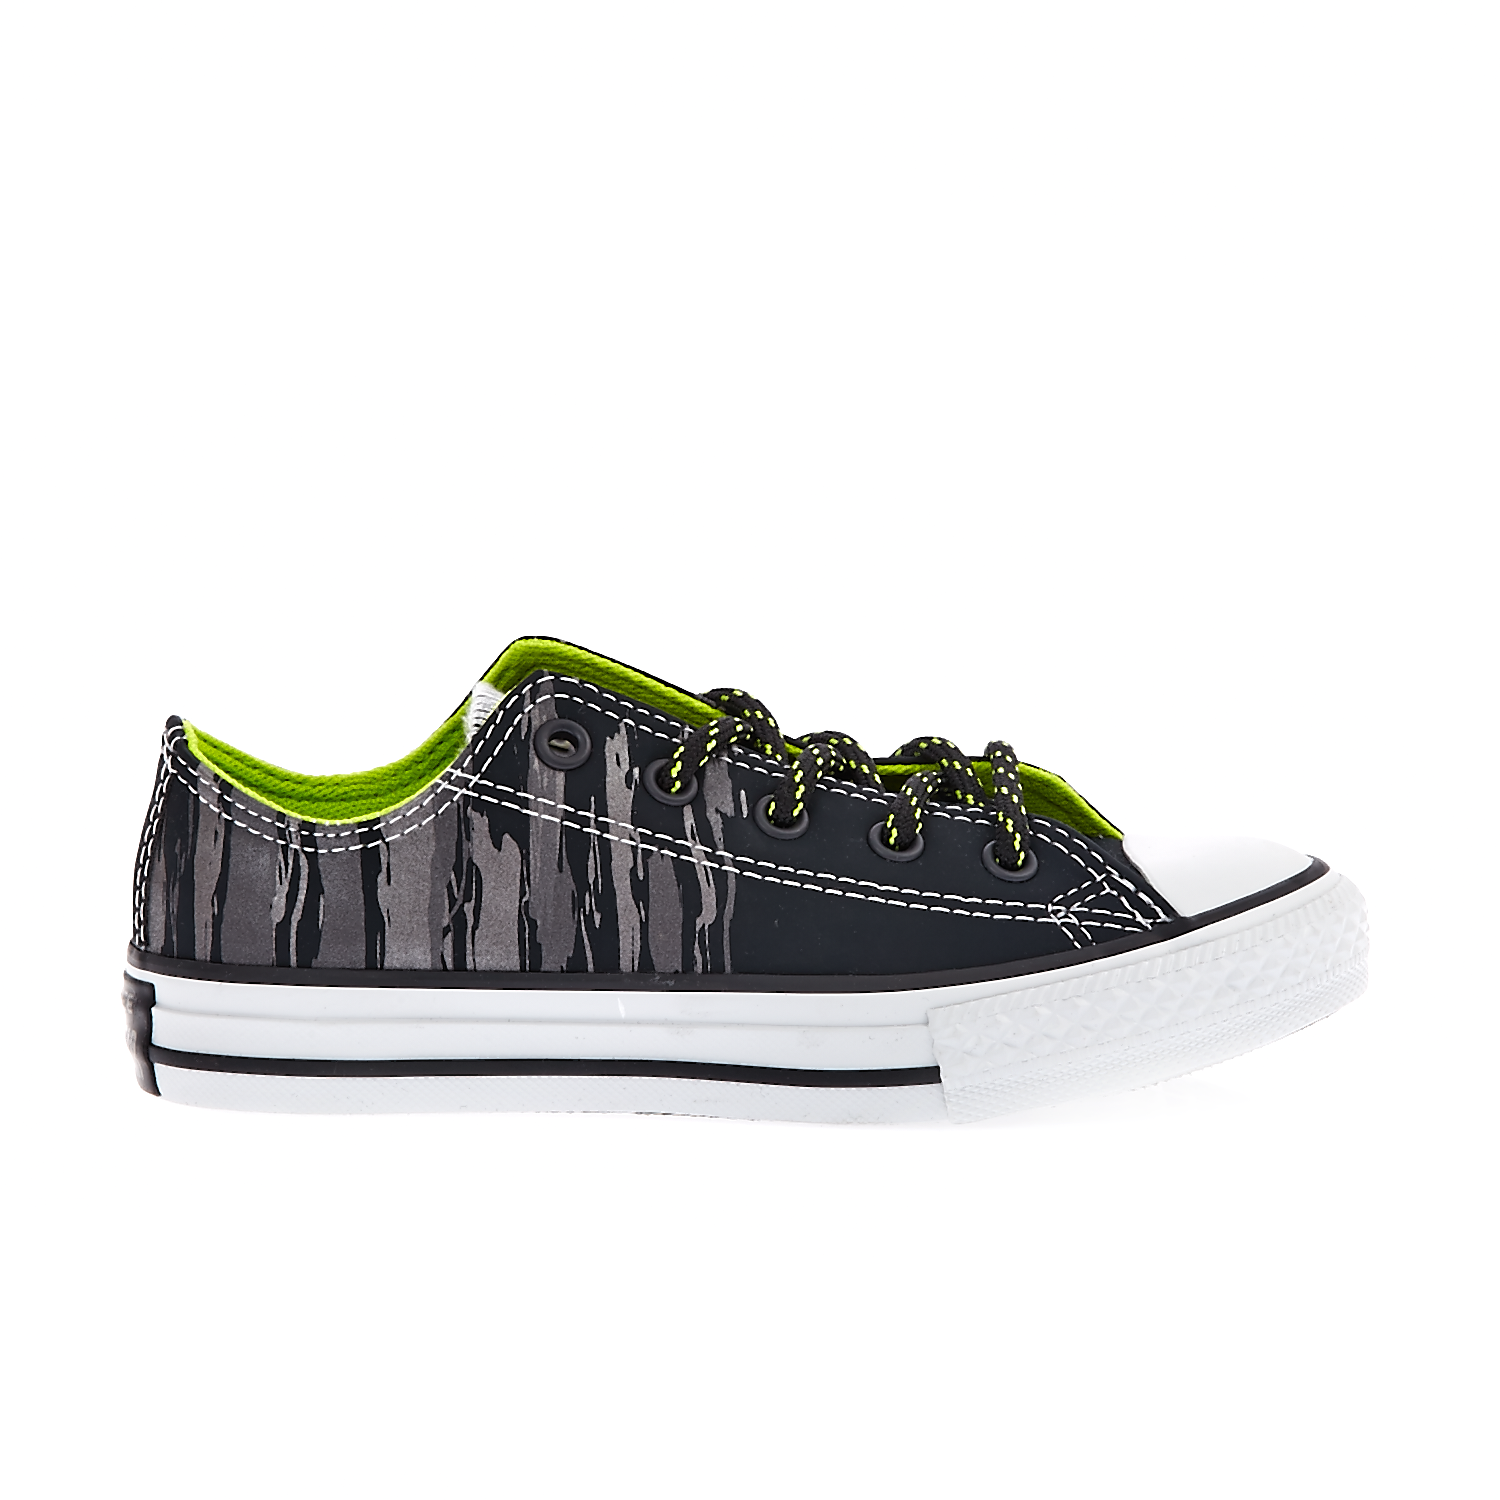 54fd3968960 CONVERSE - Παιδικά παπούτσια Chuck Taylor All Star Ox μαύρα-ανθρακί ...